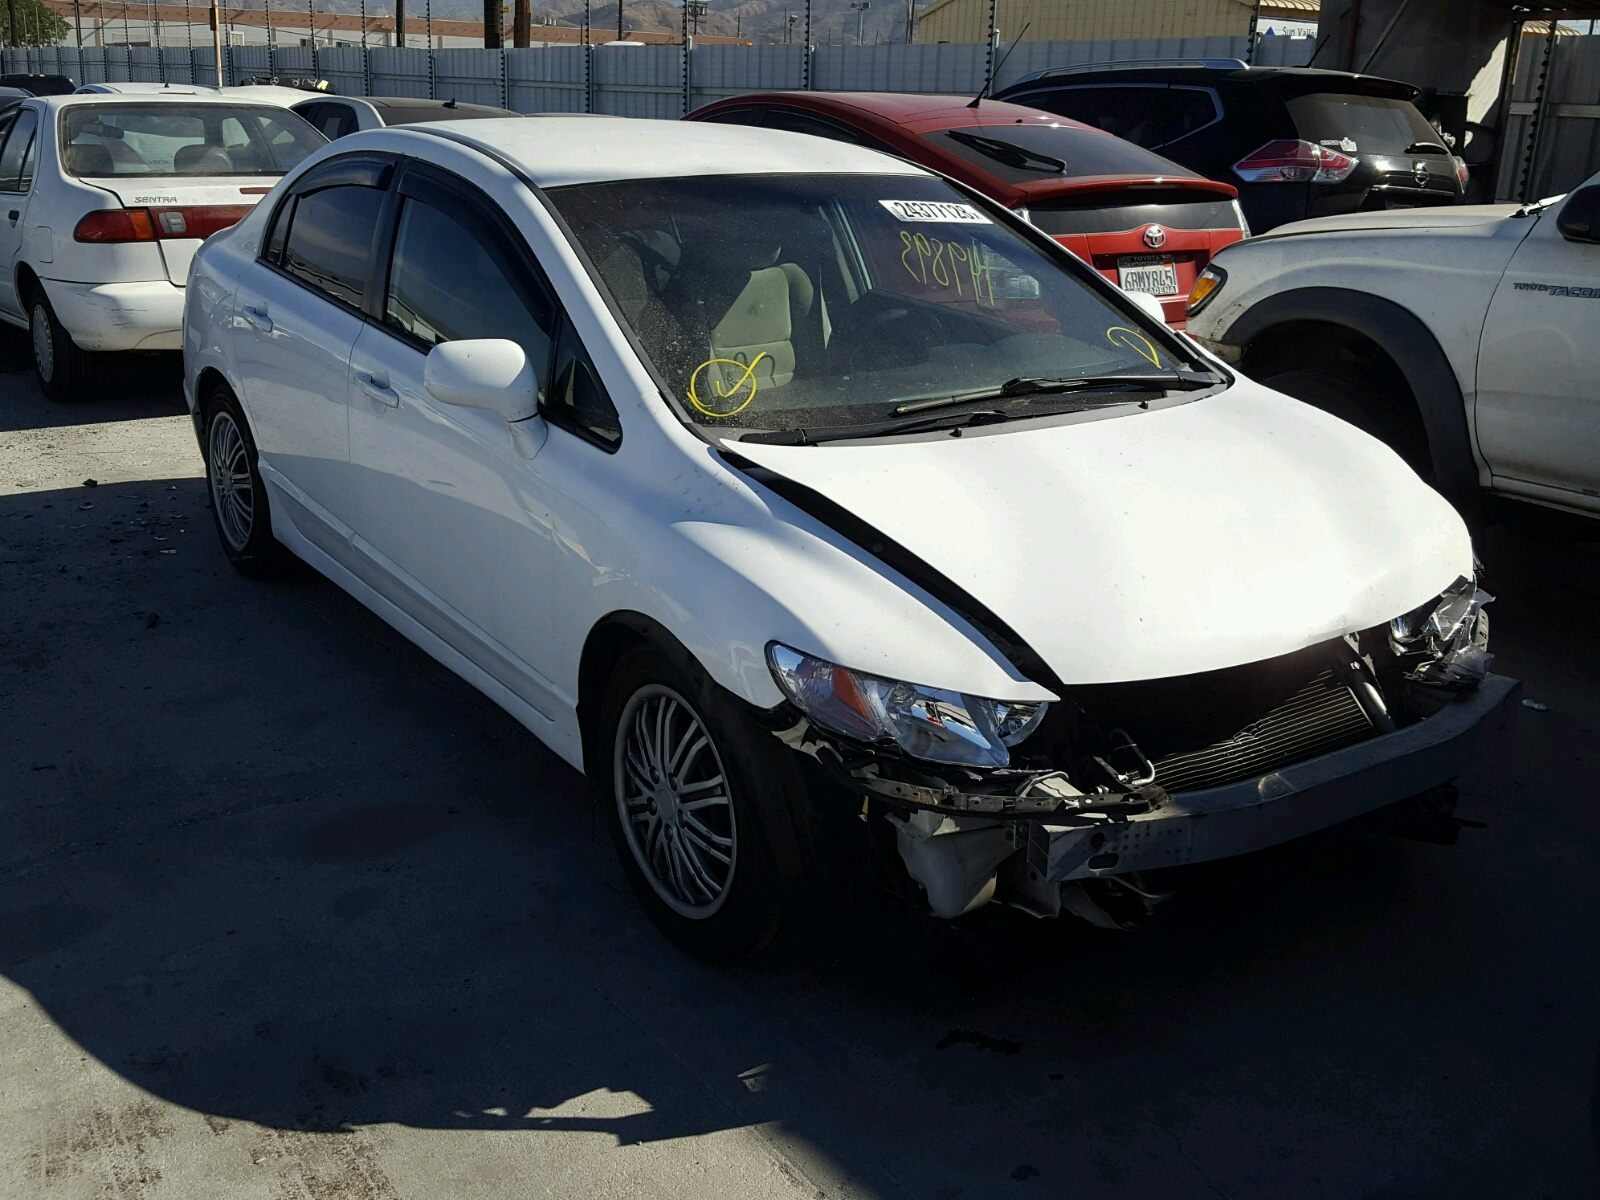 Auto auction ended on vin 1hgcm56313a025134 2003 honda for Sun valley motors sacramento